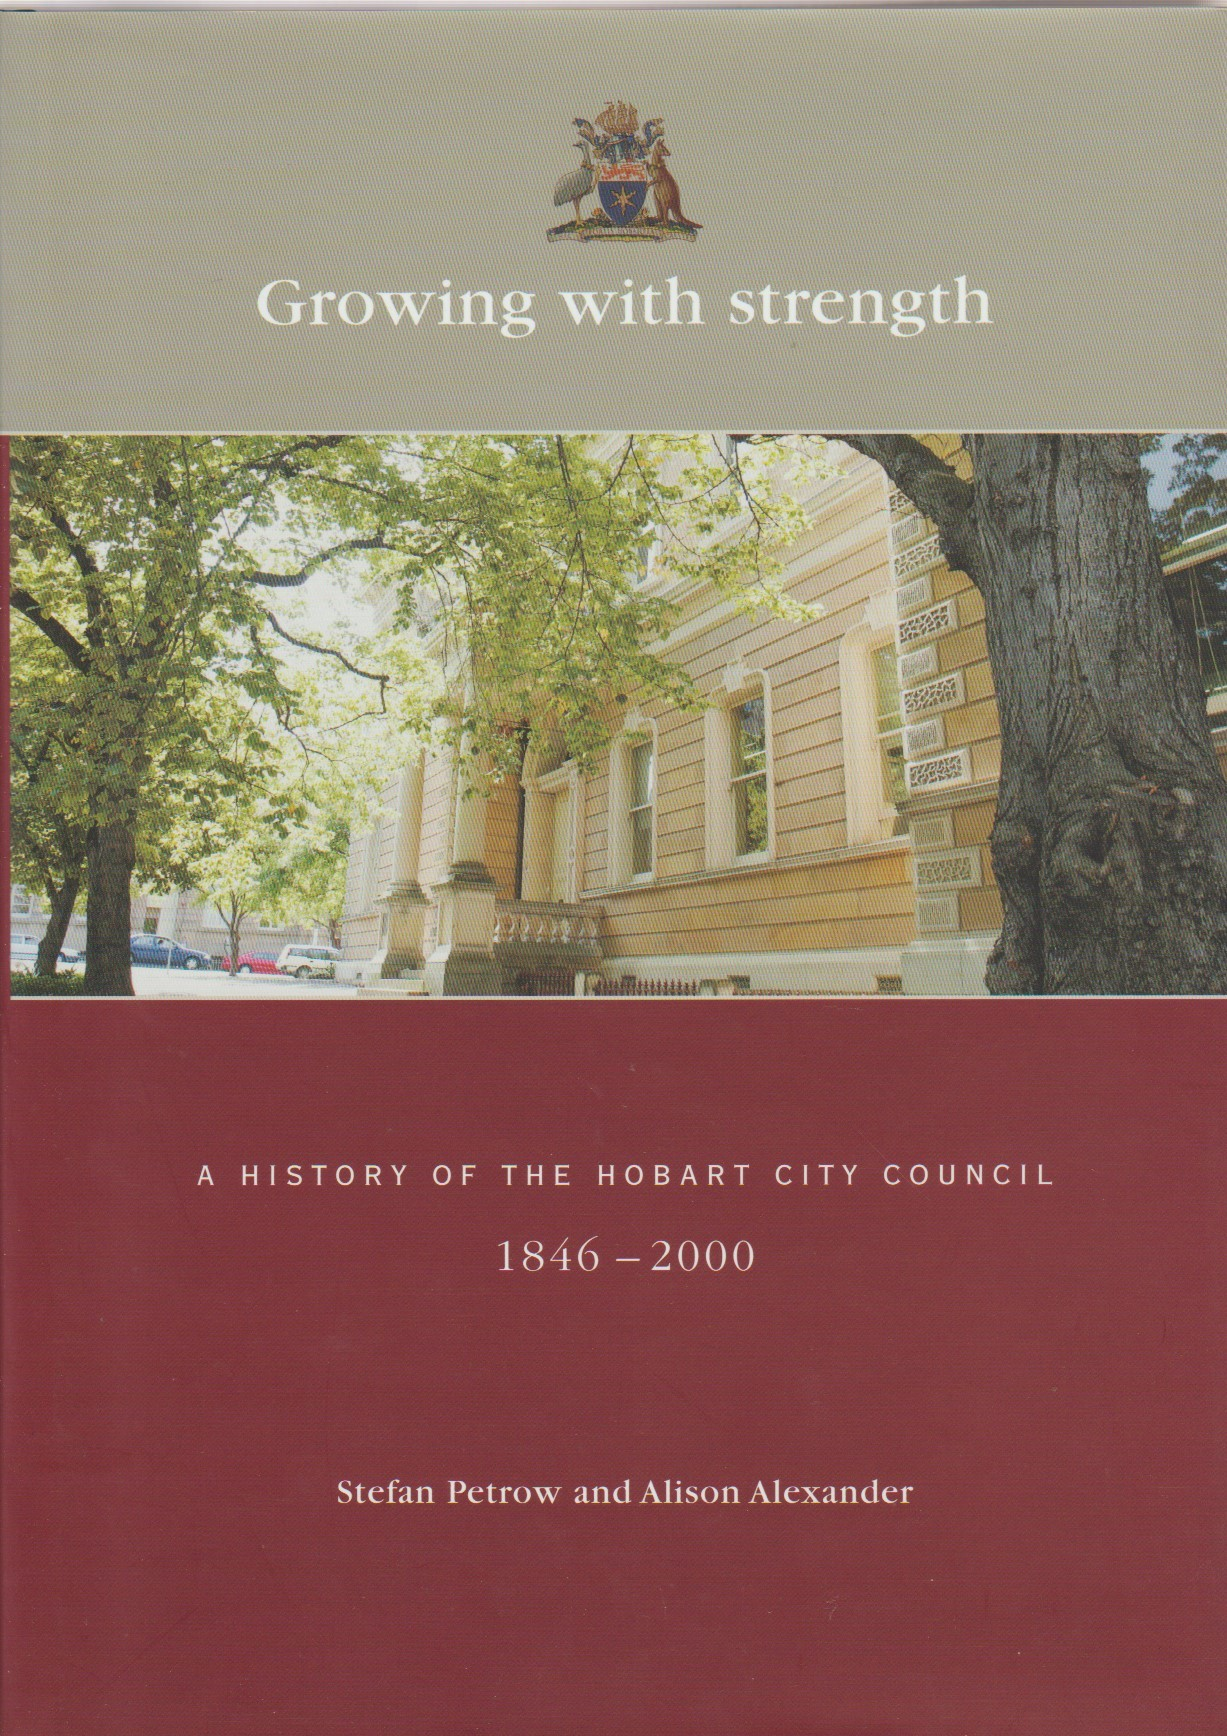 Growing with Strength - History of Hobart City Council 1846-2000